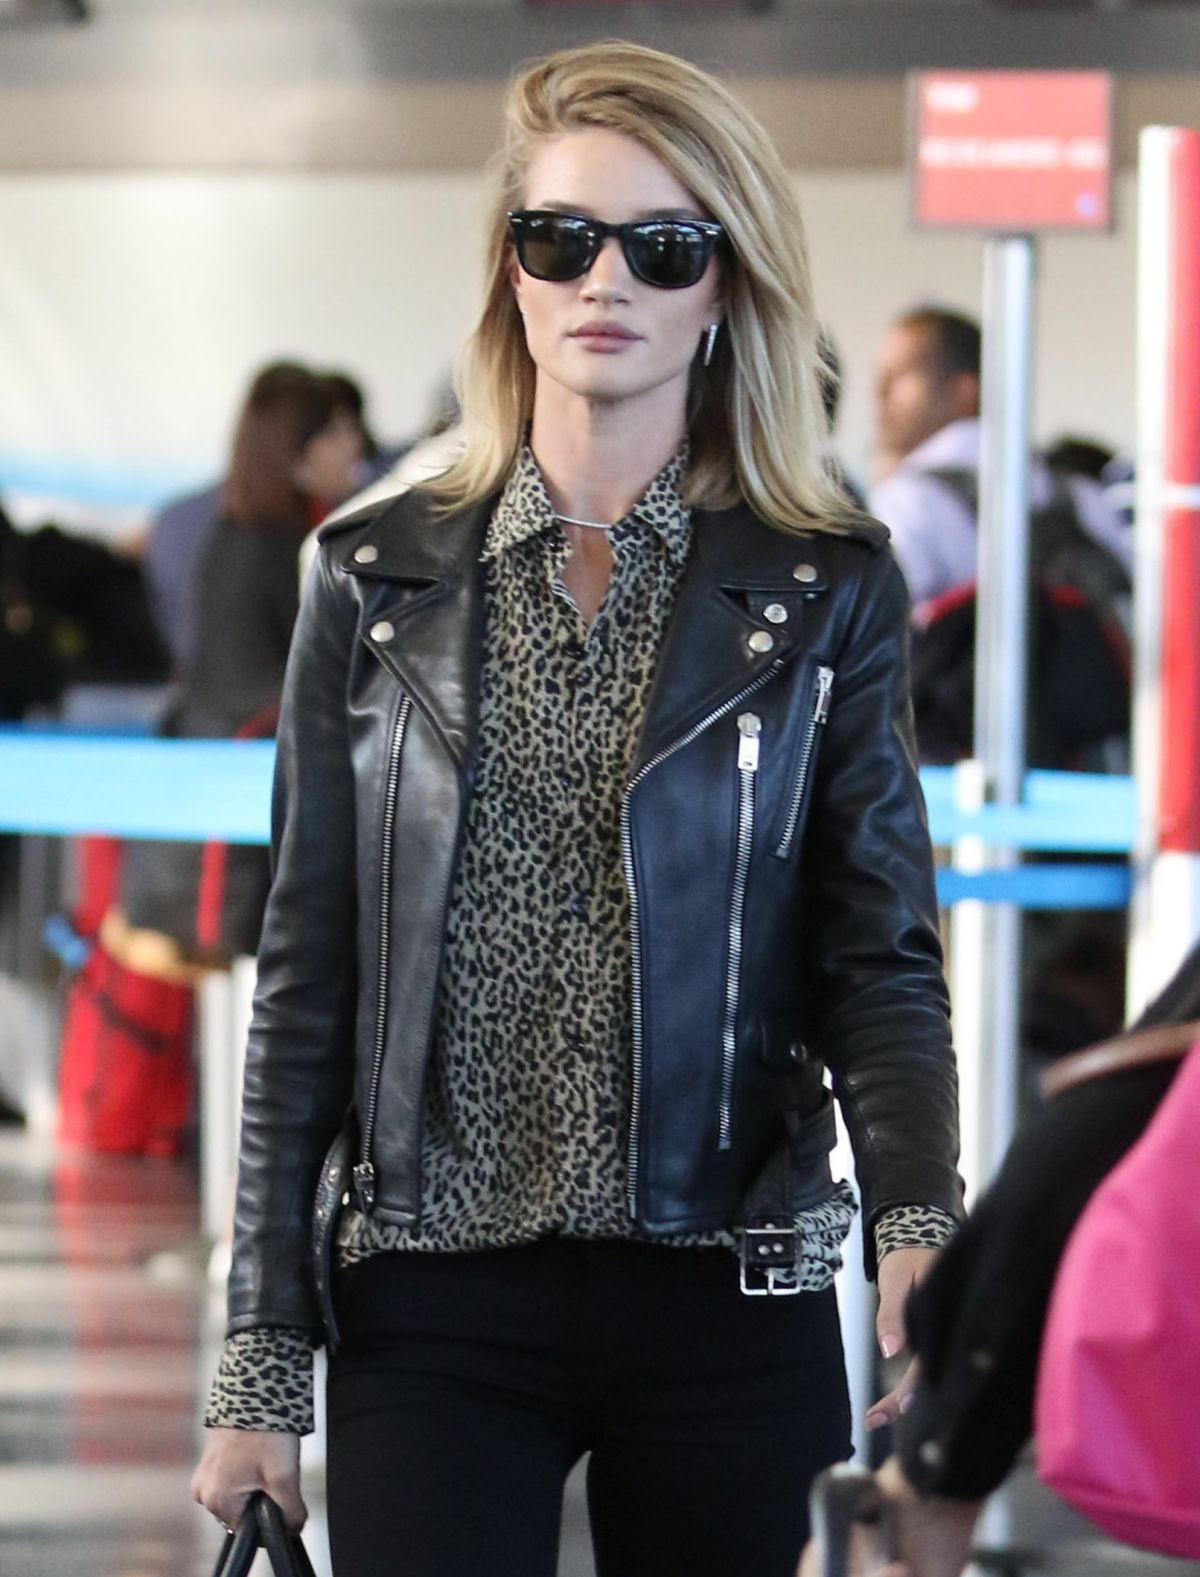 ROSIE HUNTINGTON-WHITELEY at JFK Airport in New York 05/03/2015